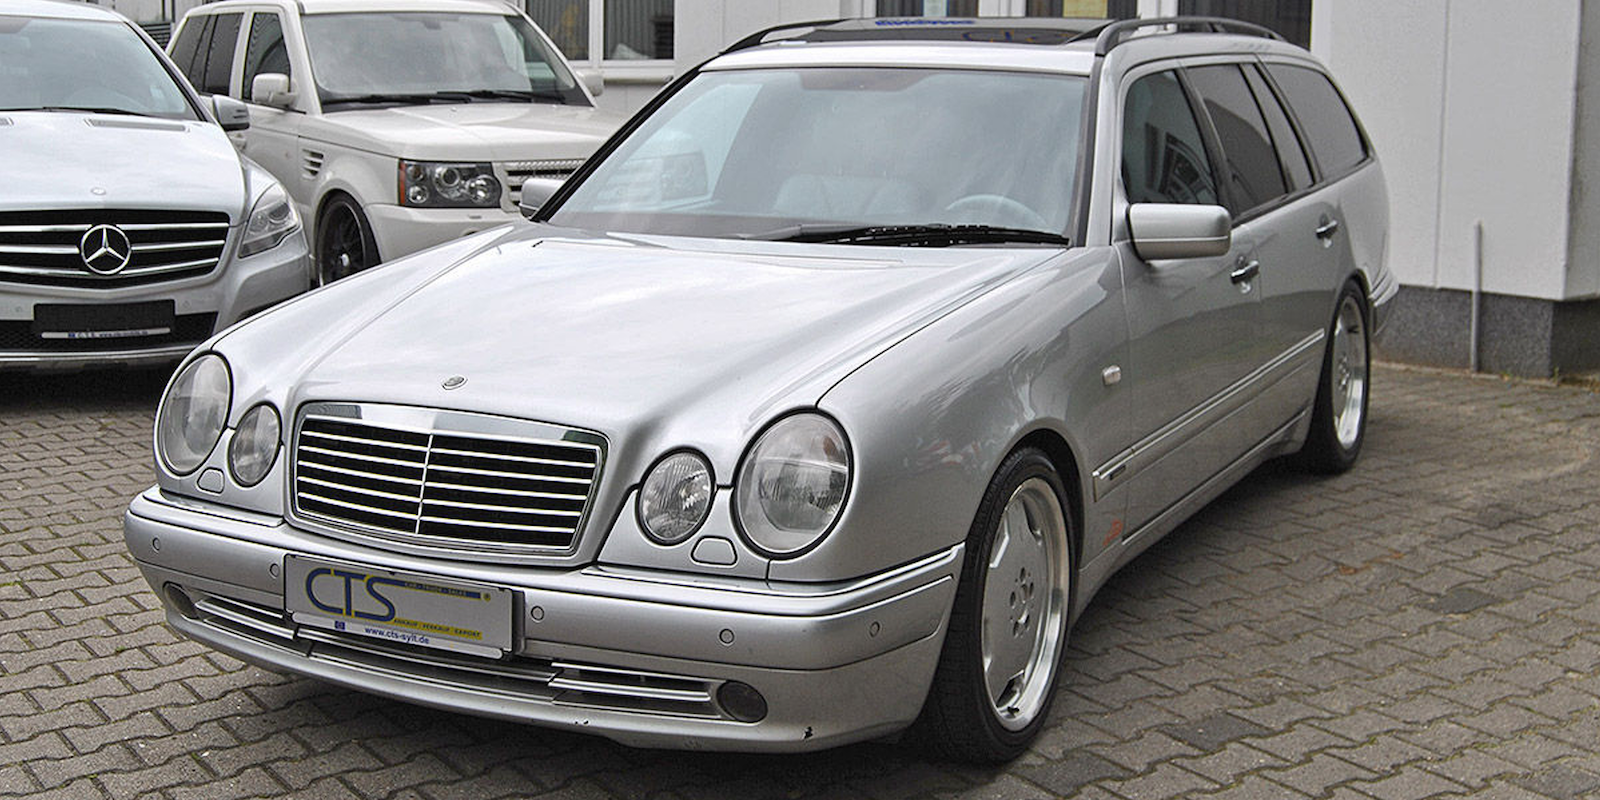 A mercedes e55 amg wagon once owned by michael schumacher for Mercedes benz e55 amg wagon for sale